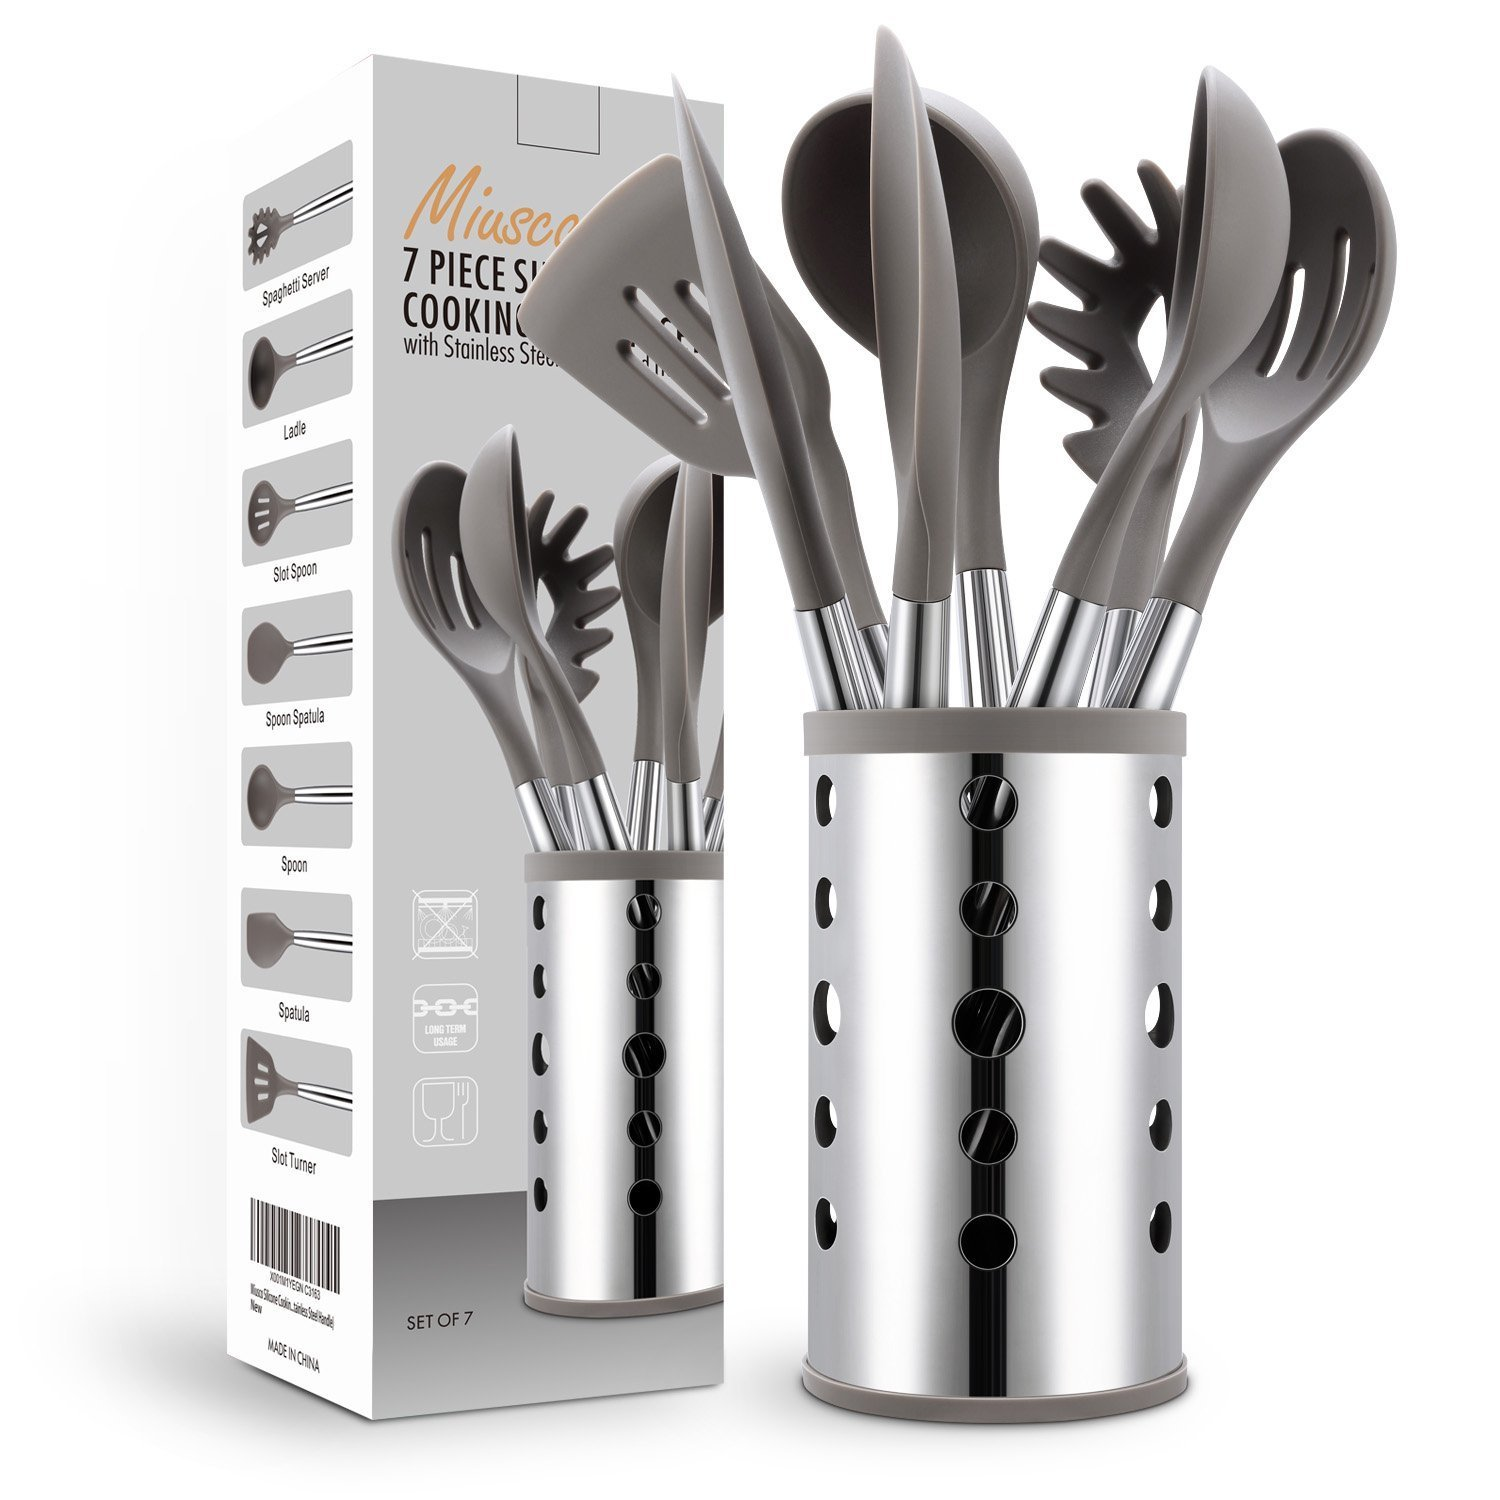 7 Piece Silicone Cooking Utensil Set with Stainless Steel Handle & Utensil Holder UK Plaque